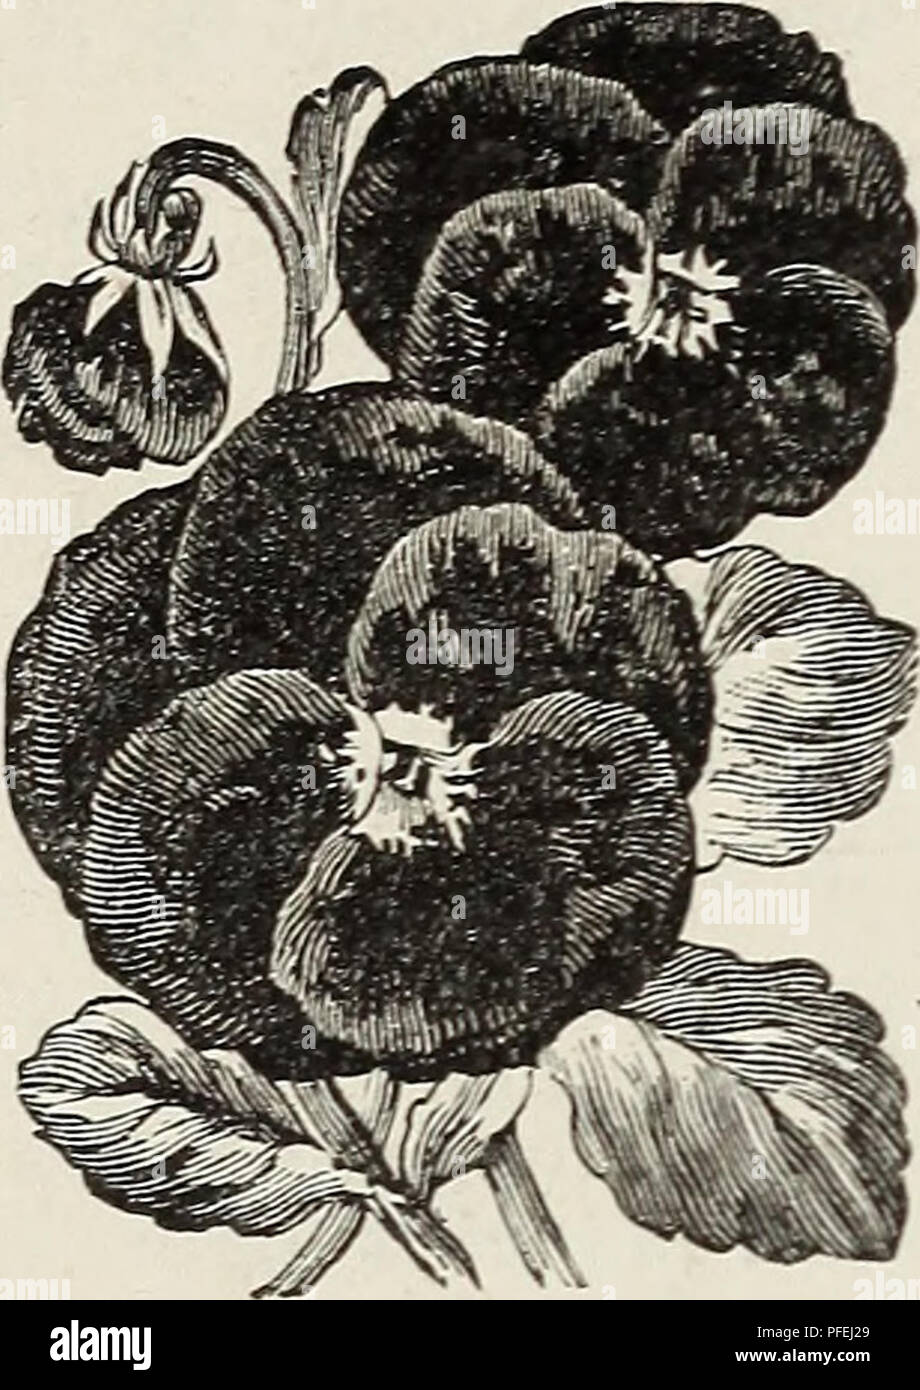 """. Descriptive catalogue of fruit and shade trees, ornamental plants, palms, bulbs, etc. : season of 1890-91. Nurseries (Horticulture) California Catalogs; Fruit Catalogs; Gardening Catalogs; Trees Catalogs. 12 CHAPPELOW'S JS'URSERY. BORDER PLANTS. Fevekfew. Pinks and other border plants, in boxes of 50 and 100. at low rates. Pansy seed, saved from m}- own show plants. 10c per packet of about 100 seeds. Ctcas EEYOLUTA(Saoo Palm)—This is one of the riXALis Posea—Foliage green and bright carmine. Easily grown, and a maguiricent ]5hint foi' decorative work. 7""""h' ea-Mi. YrcCA Aloifolia—Spanish - Stock Image"""